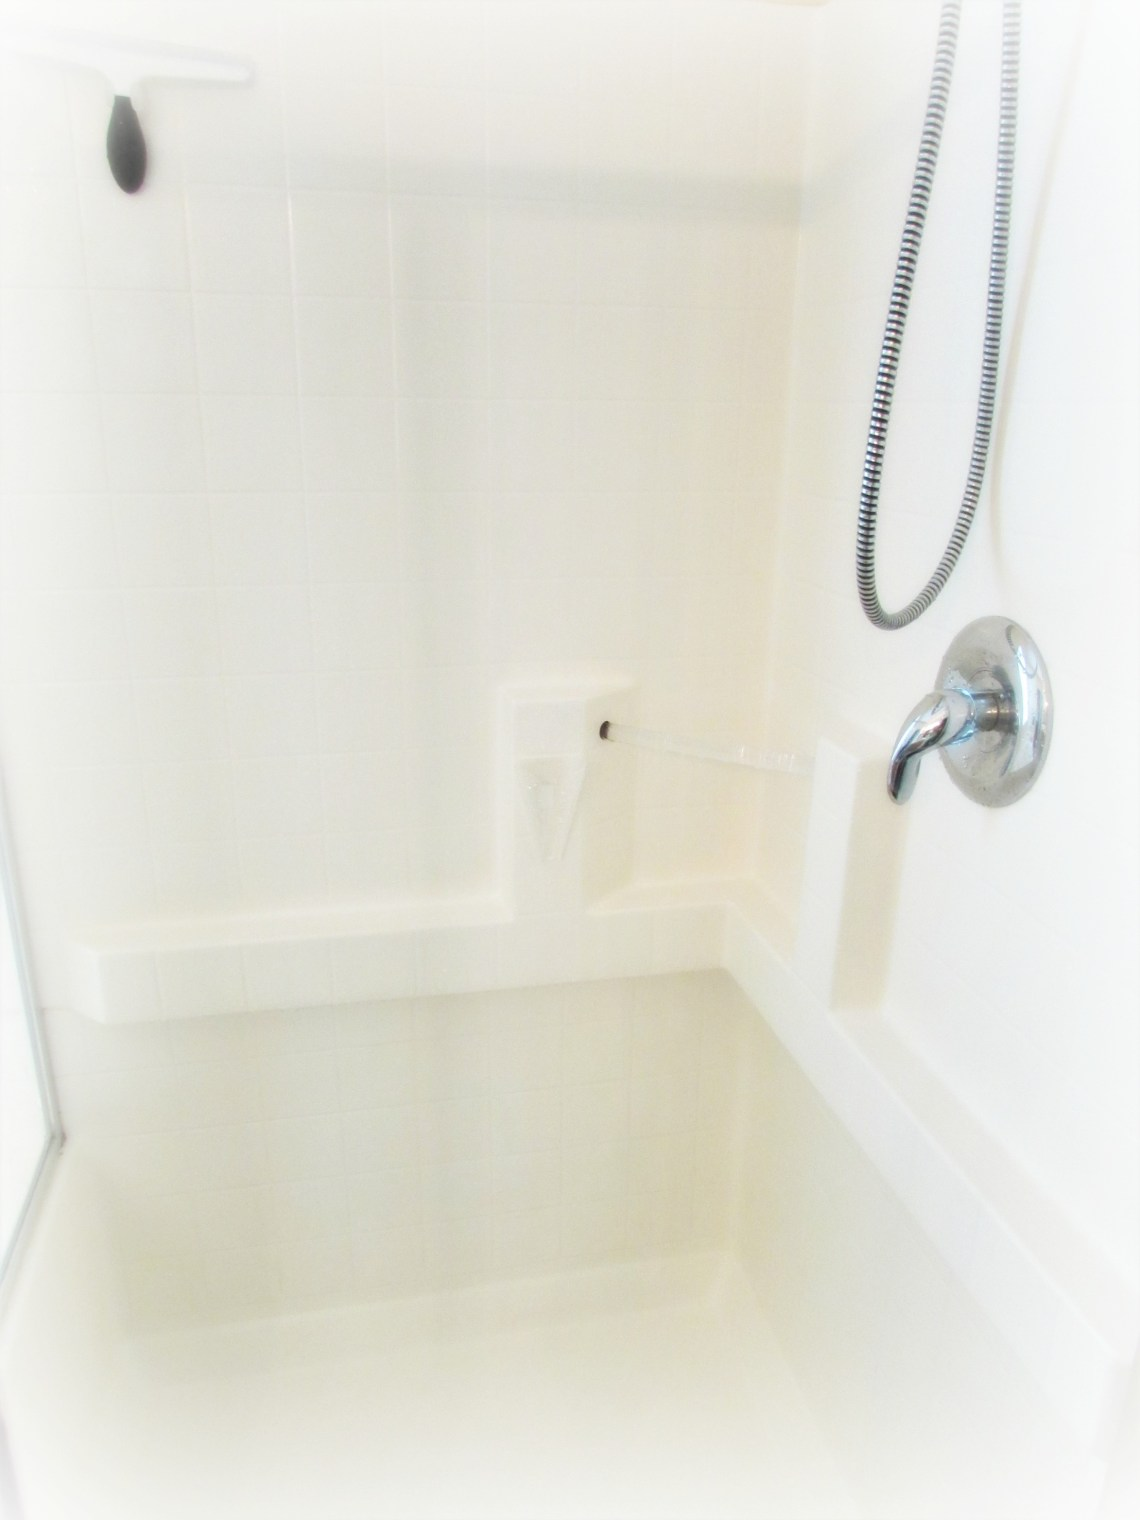 Get a Sparkling Clean Shower in Minutes with this trick